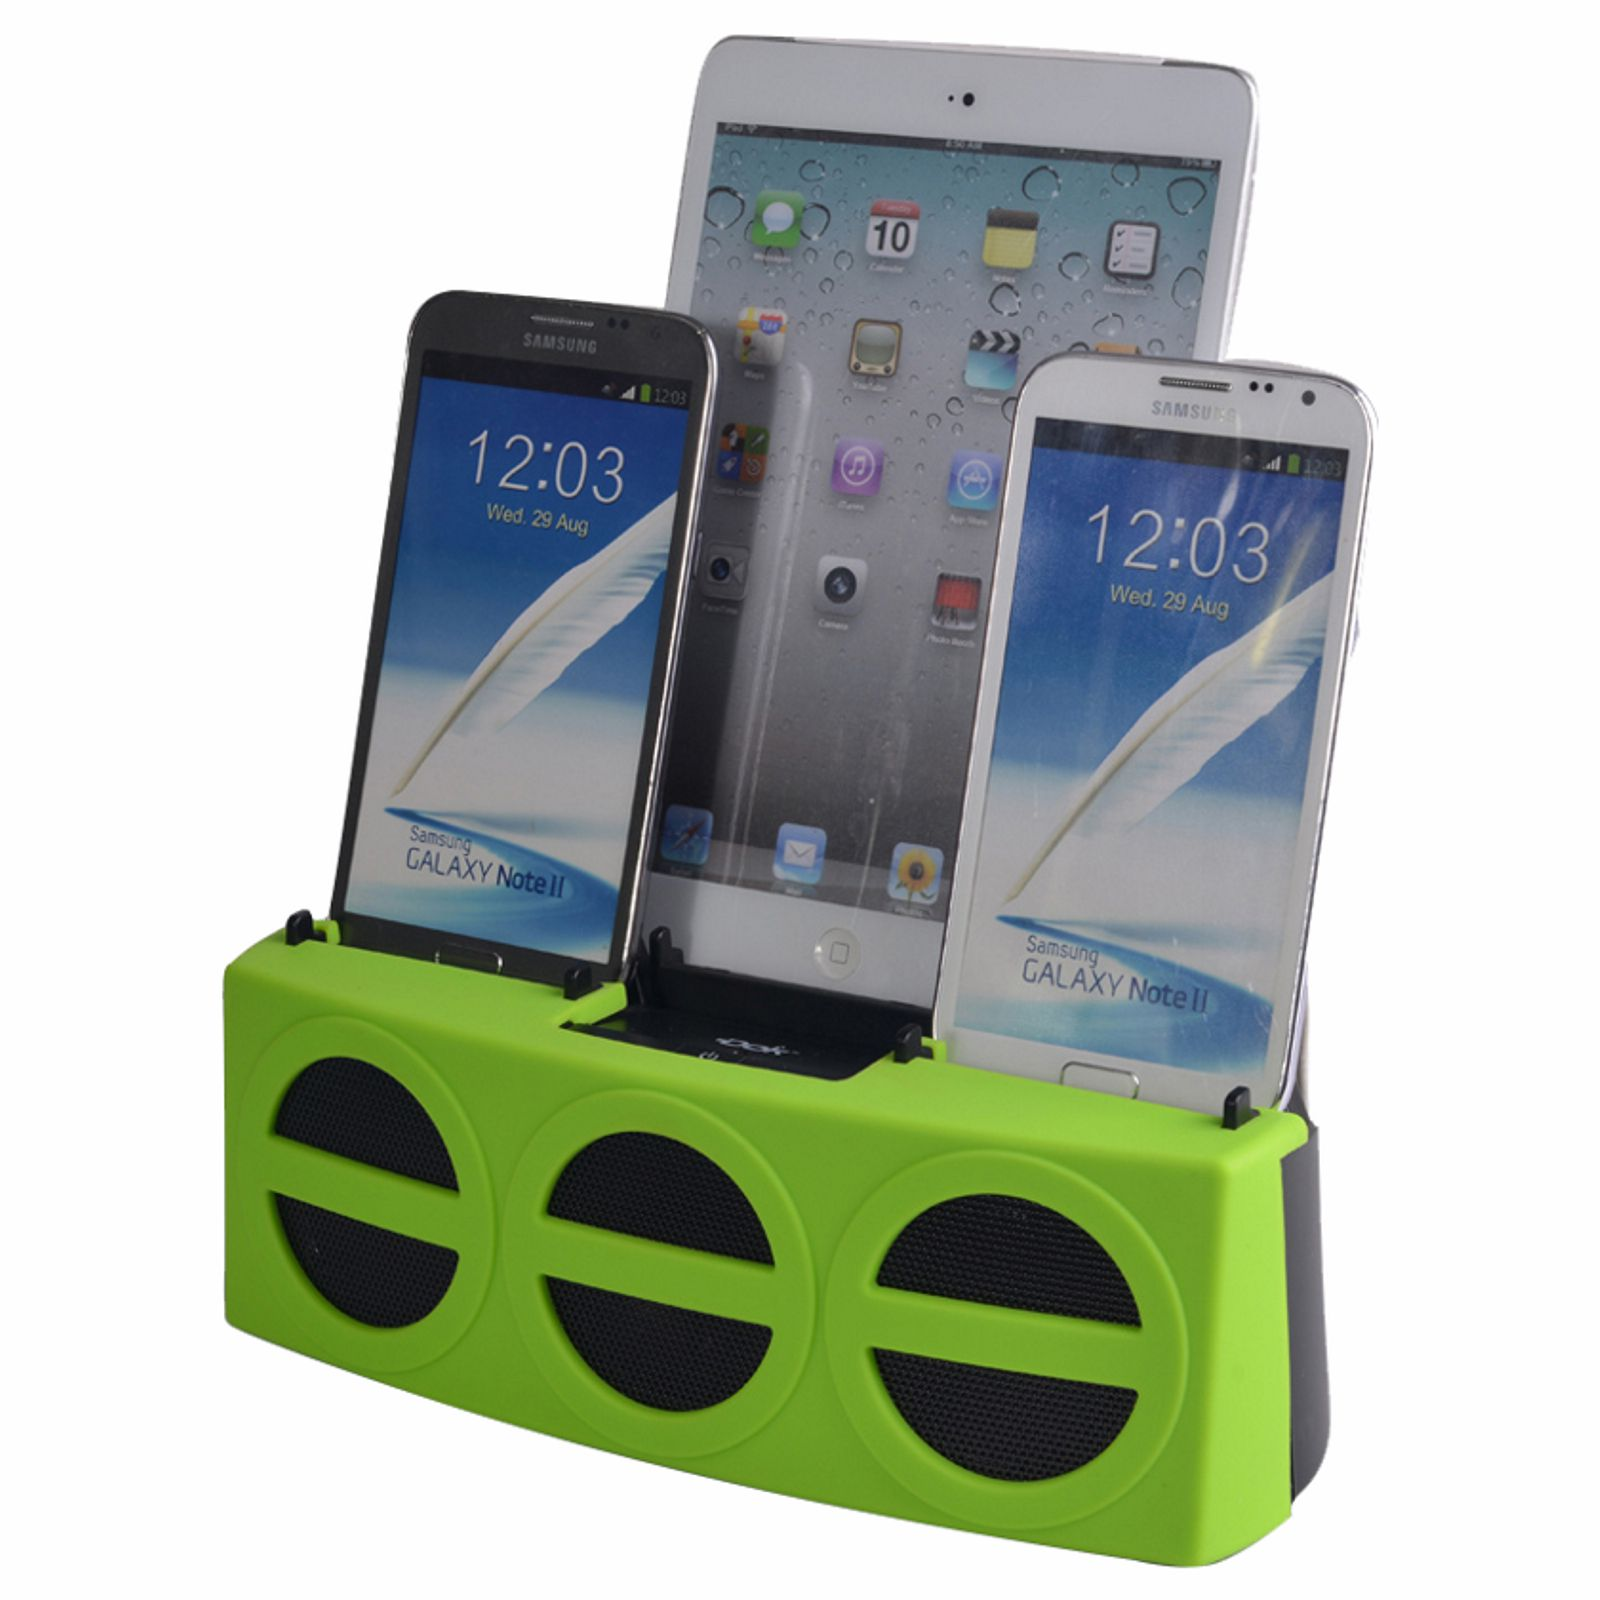 CR33GN - 5 Port Smart Phone Charger with Bluetooth Speaker and Speaker Phone (Green Face)